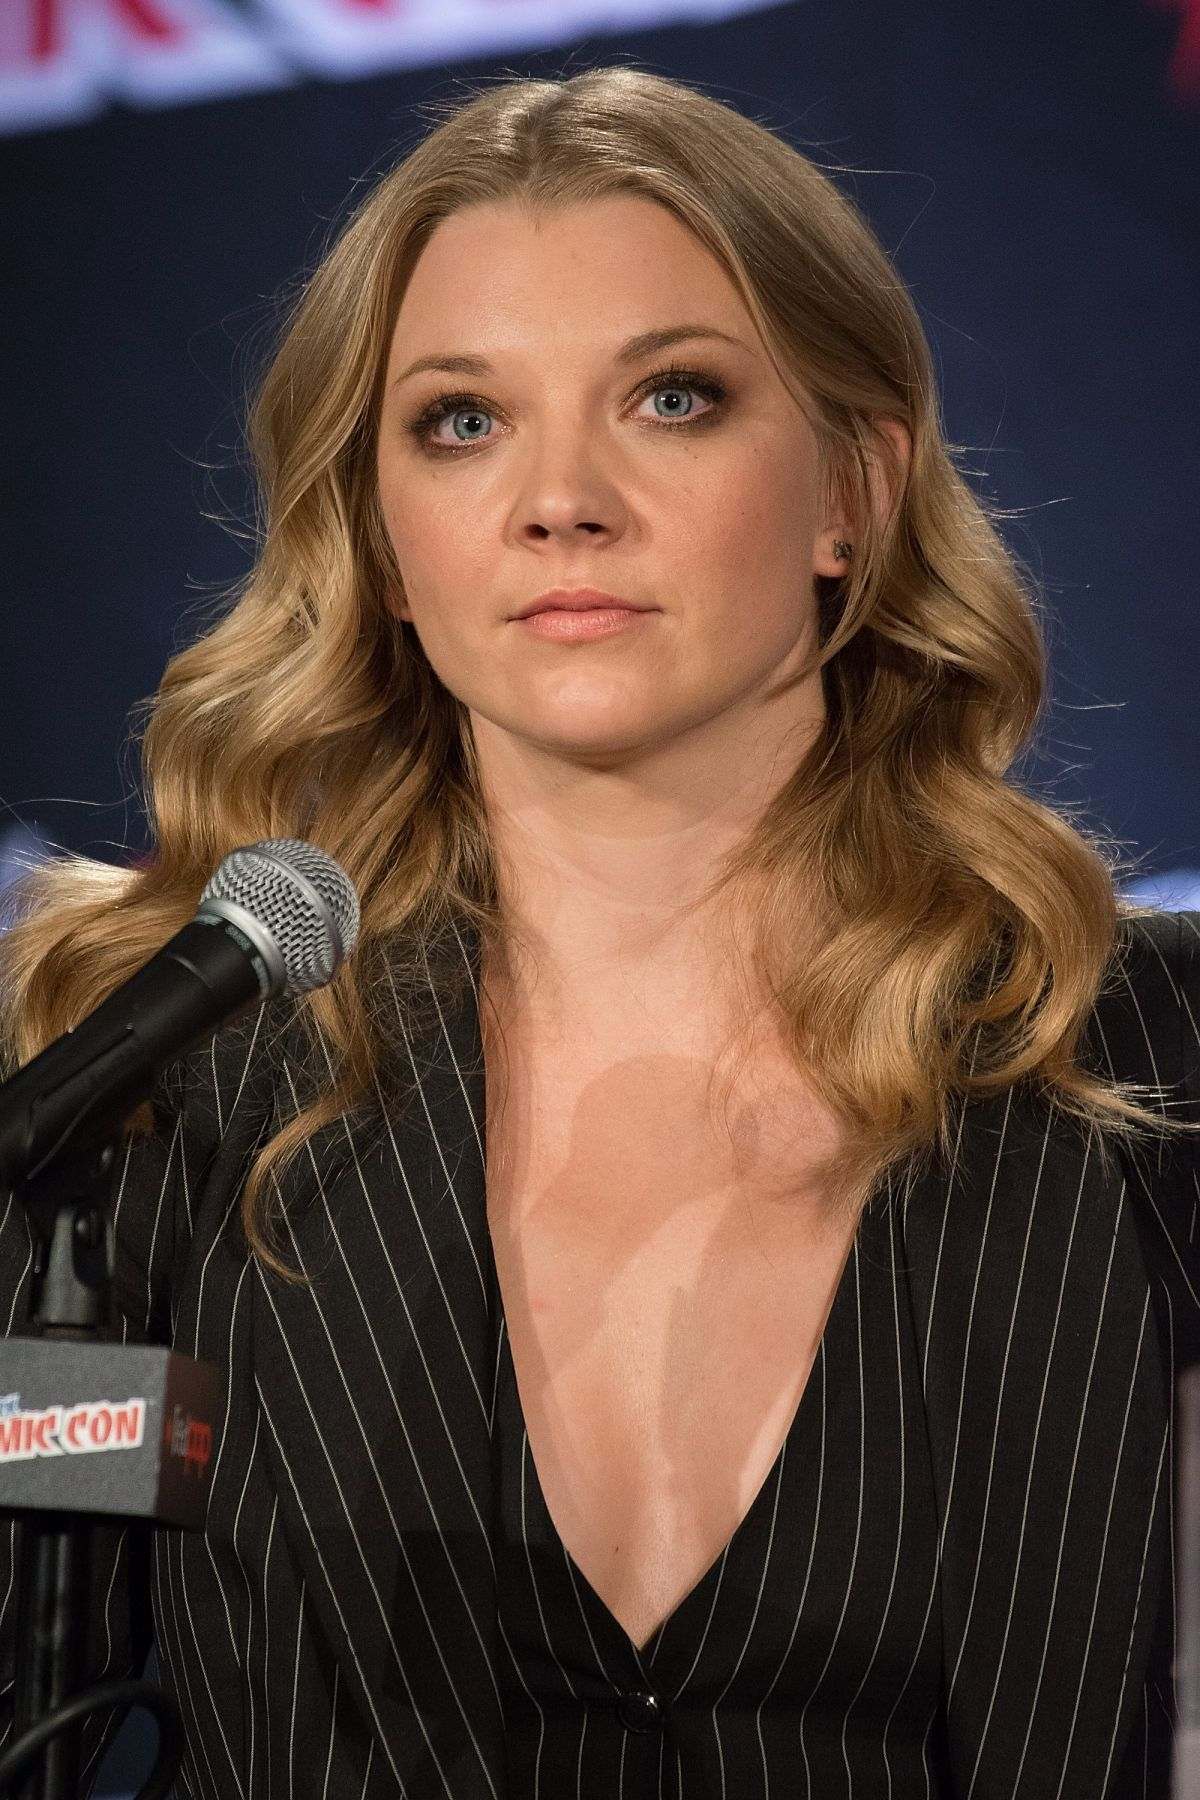 natalie dormer at of thrones panel at comic con in